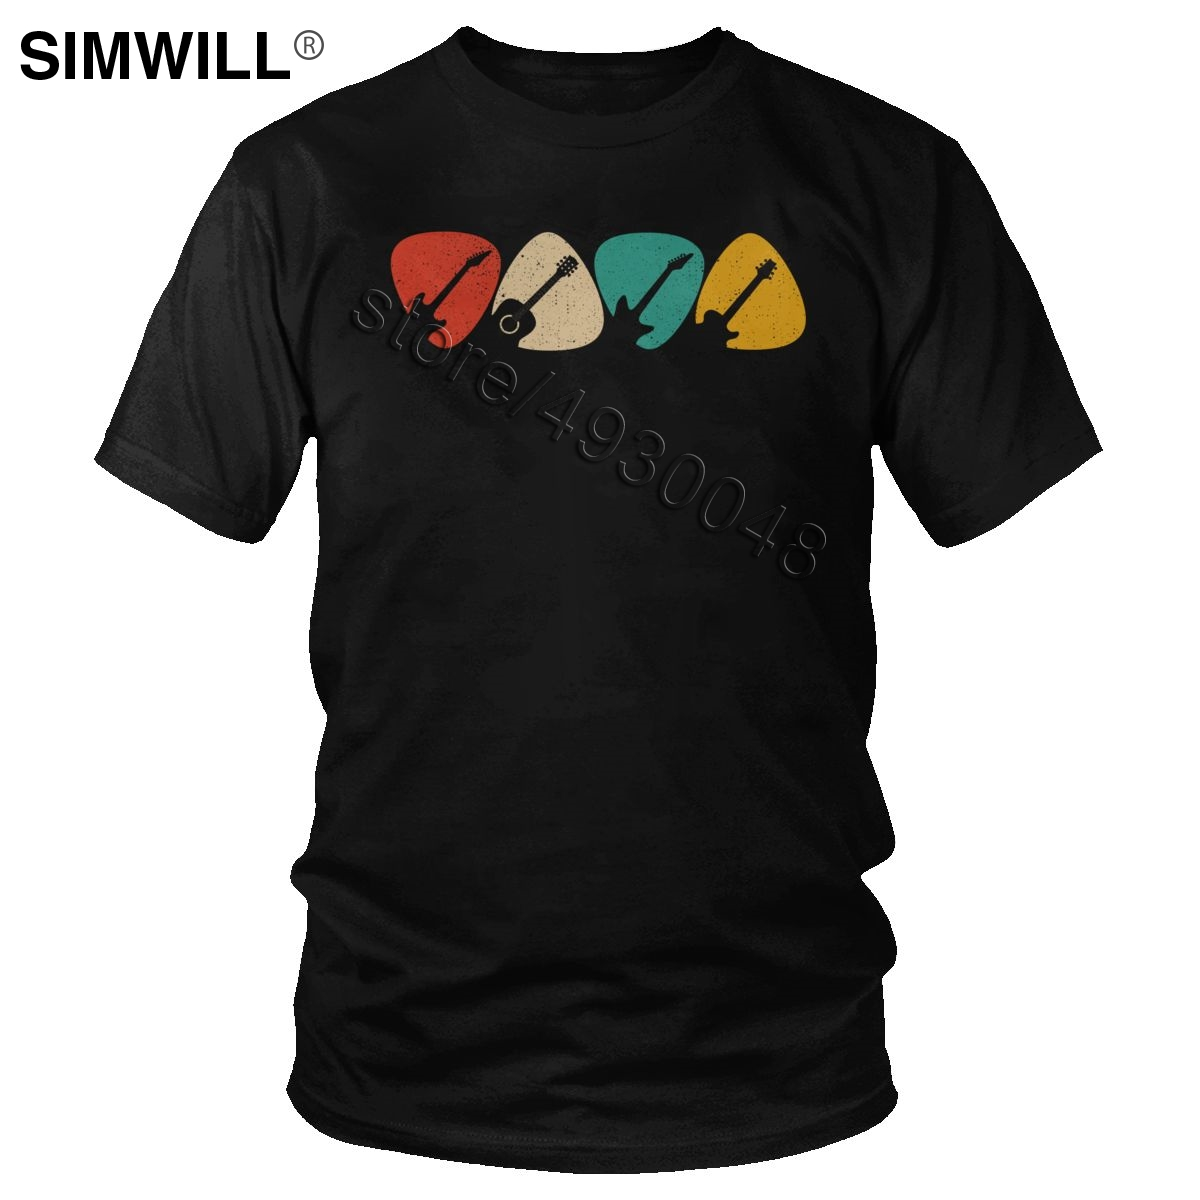 Male Guitar Pick Shirt Gift For Guitarist Retro Vintage T-Shirt Rock Musician T Shirt Men Short Sleeve Cotton Graphic Tee Tops image